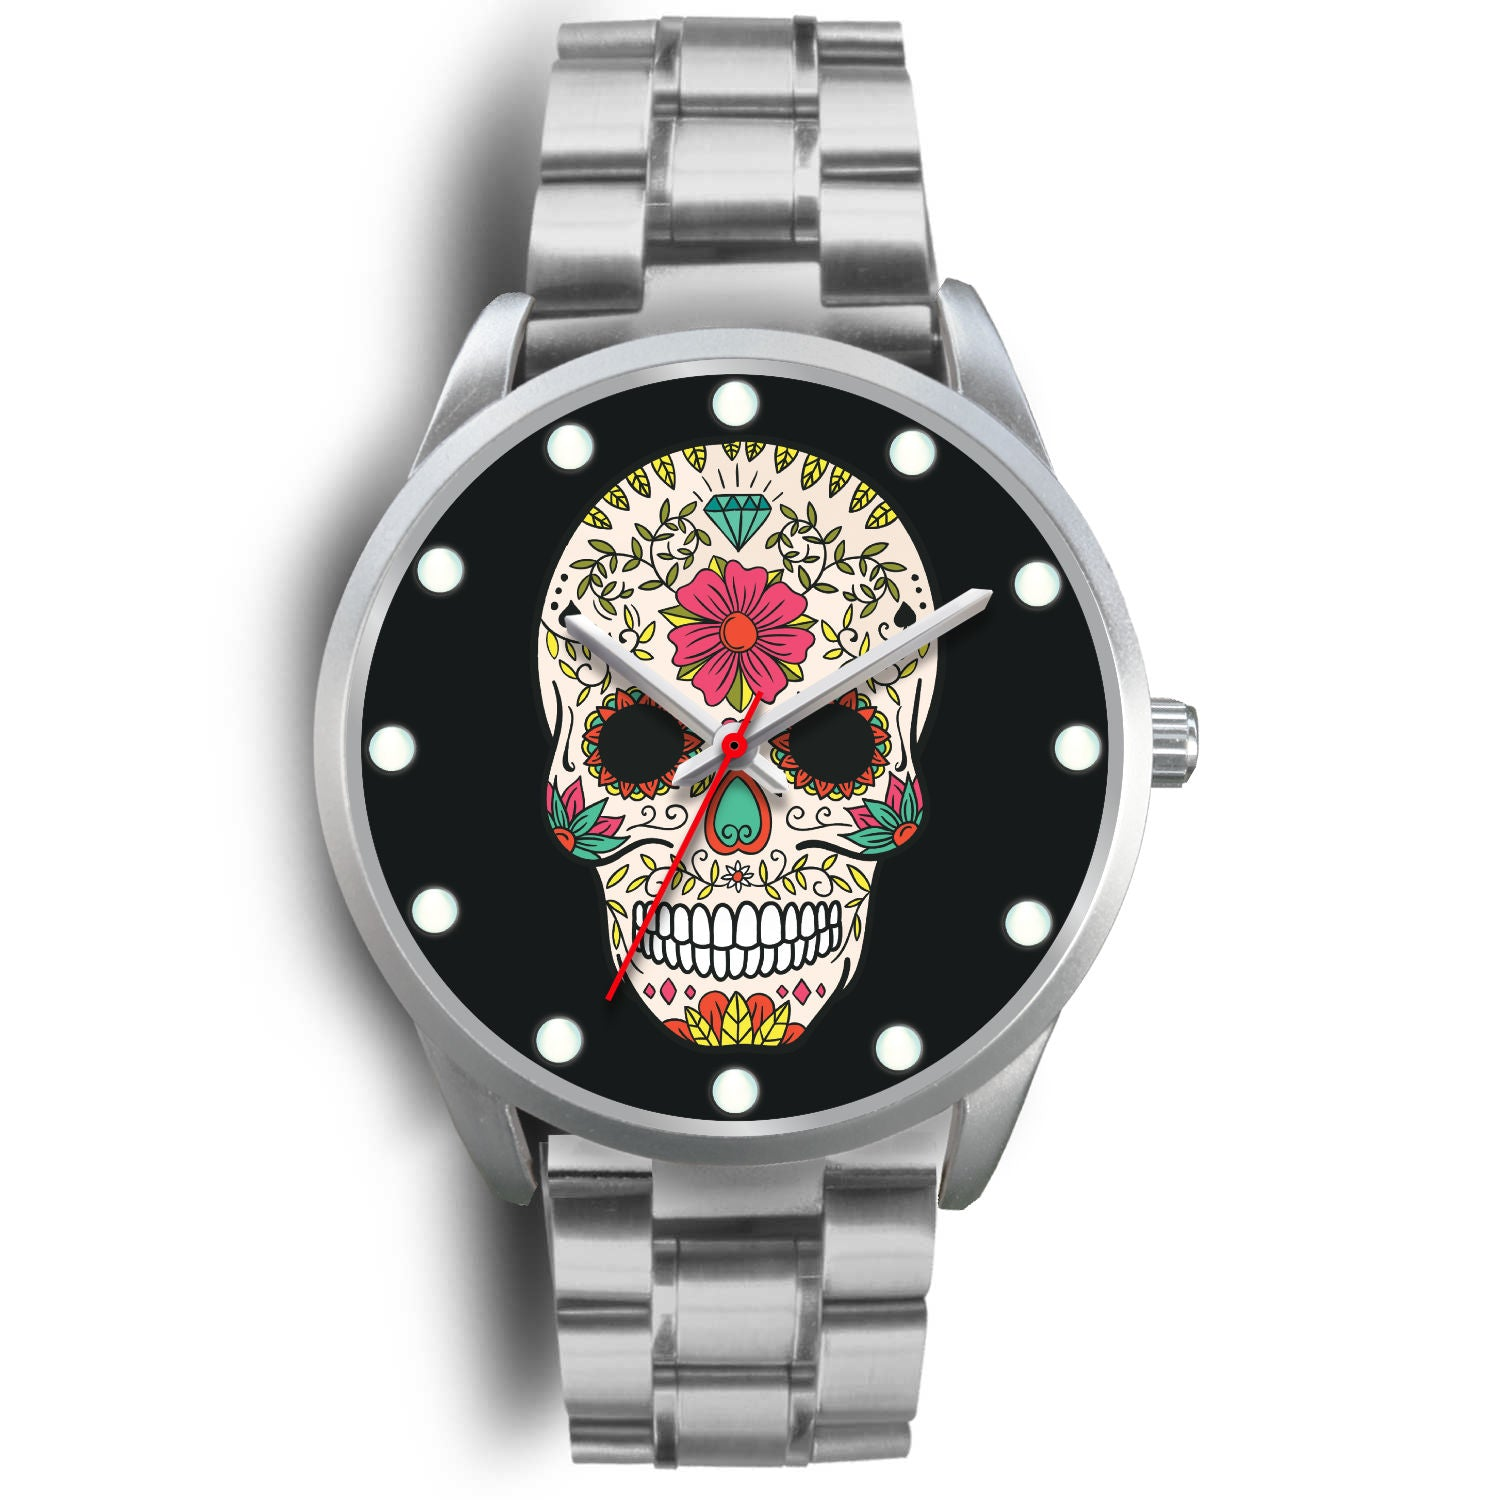 Tío Berto - Sugar Skull Watch